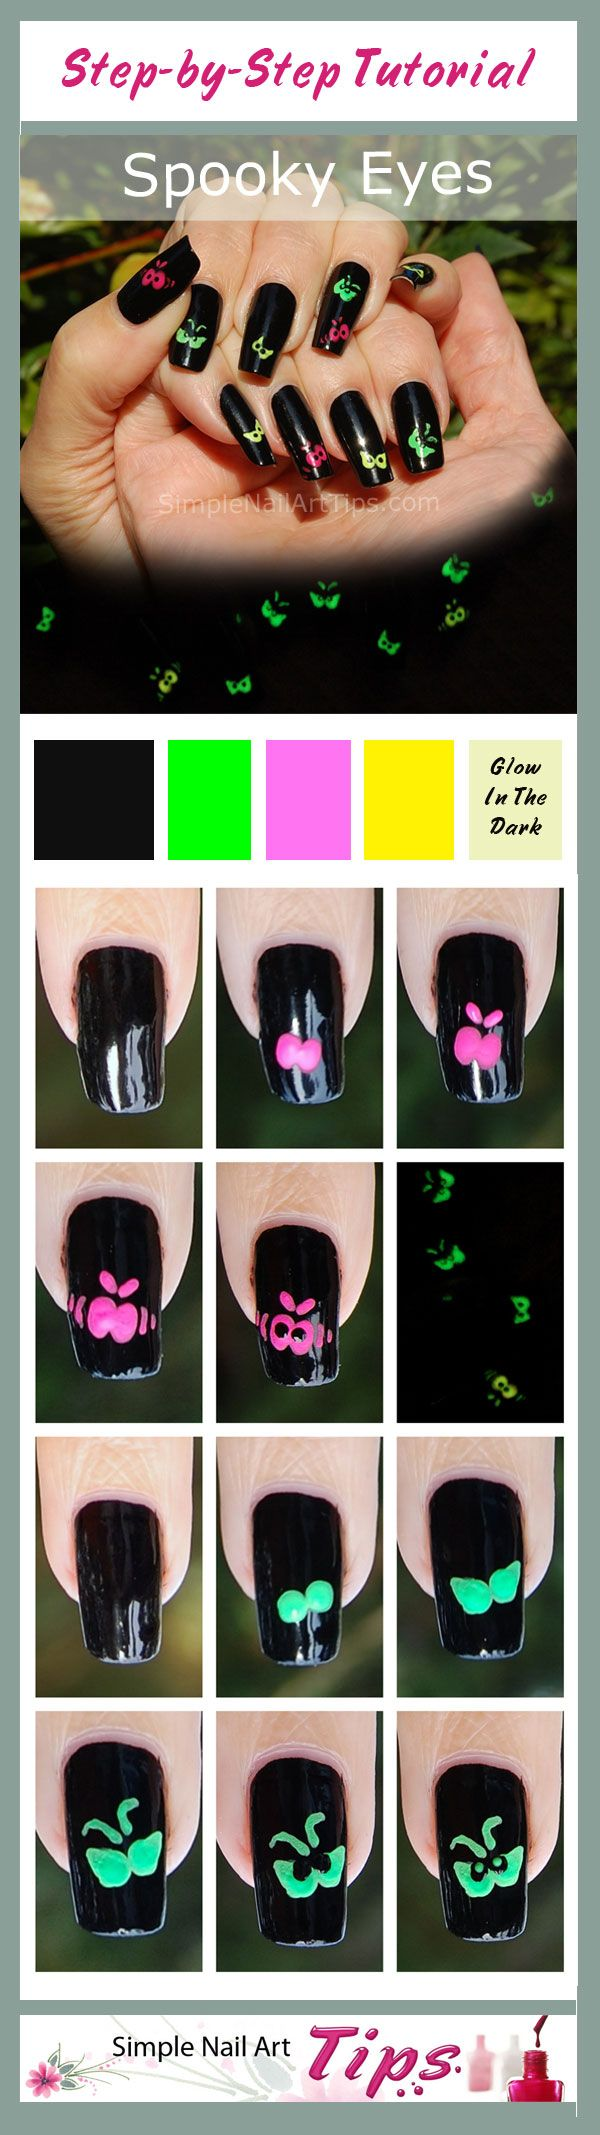 SIMPLE TUTORIAL: www.SimpleNailArtTips.com - Halloween Nails - Spooky Eyes, Glow-in-the-Dark  #nails #nailart #manicure